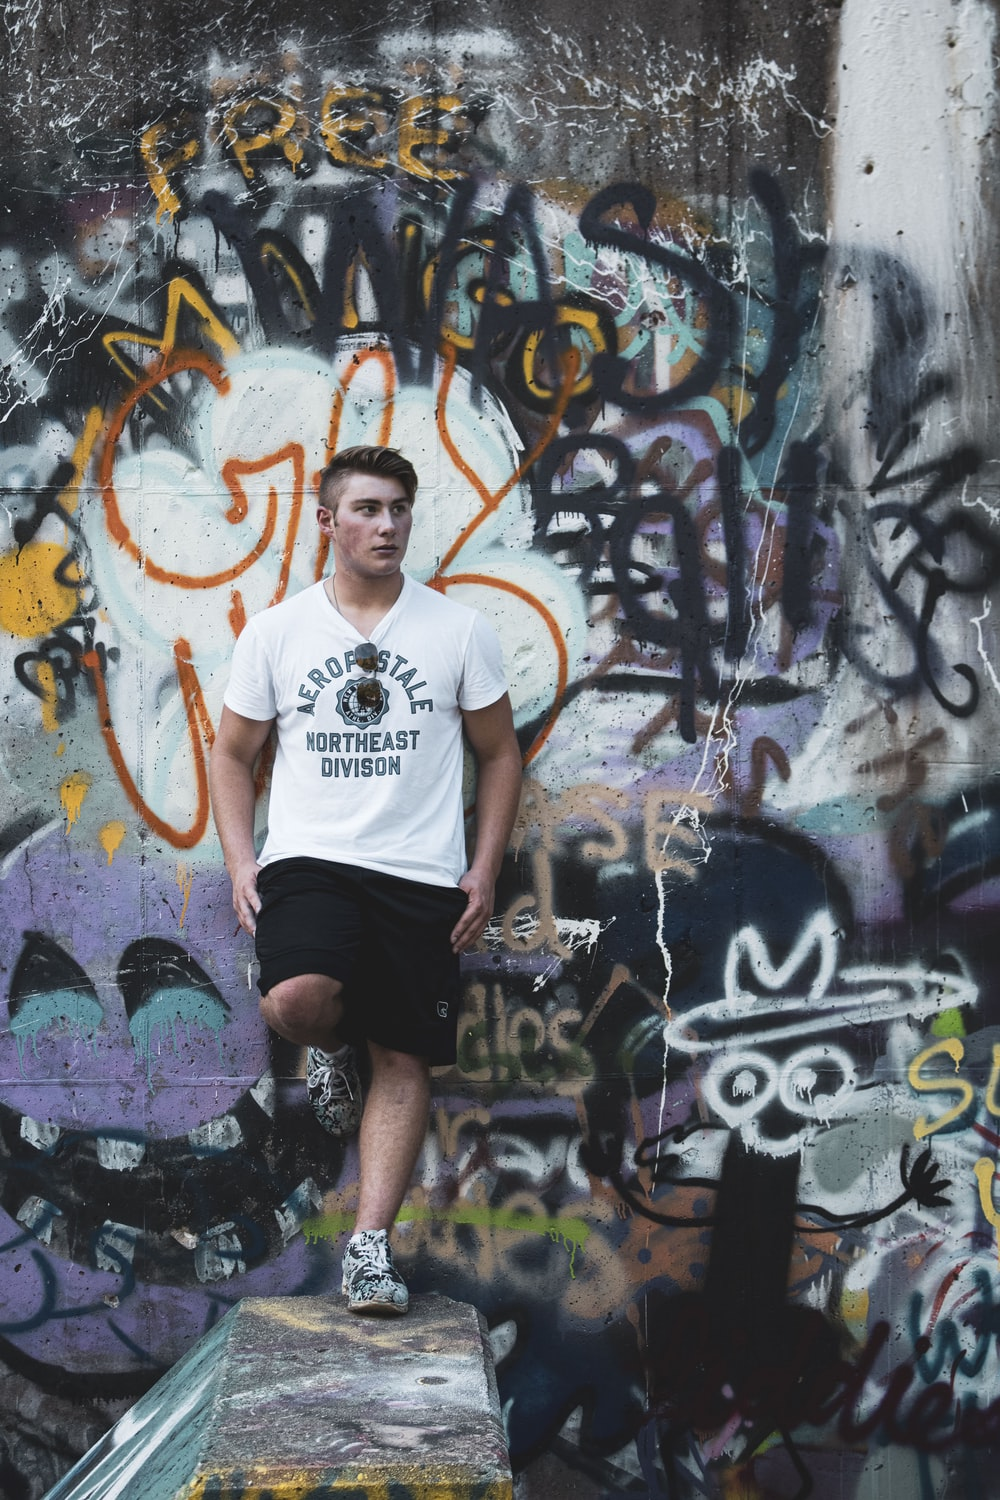 man in white crew neck t-shirt and black shorts standing beside graffiti wall